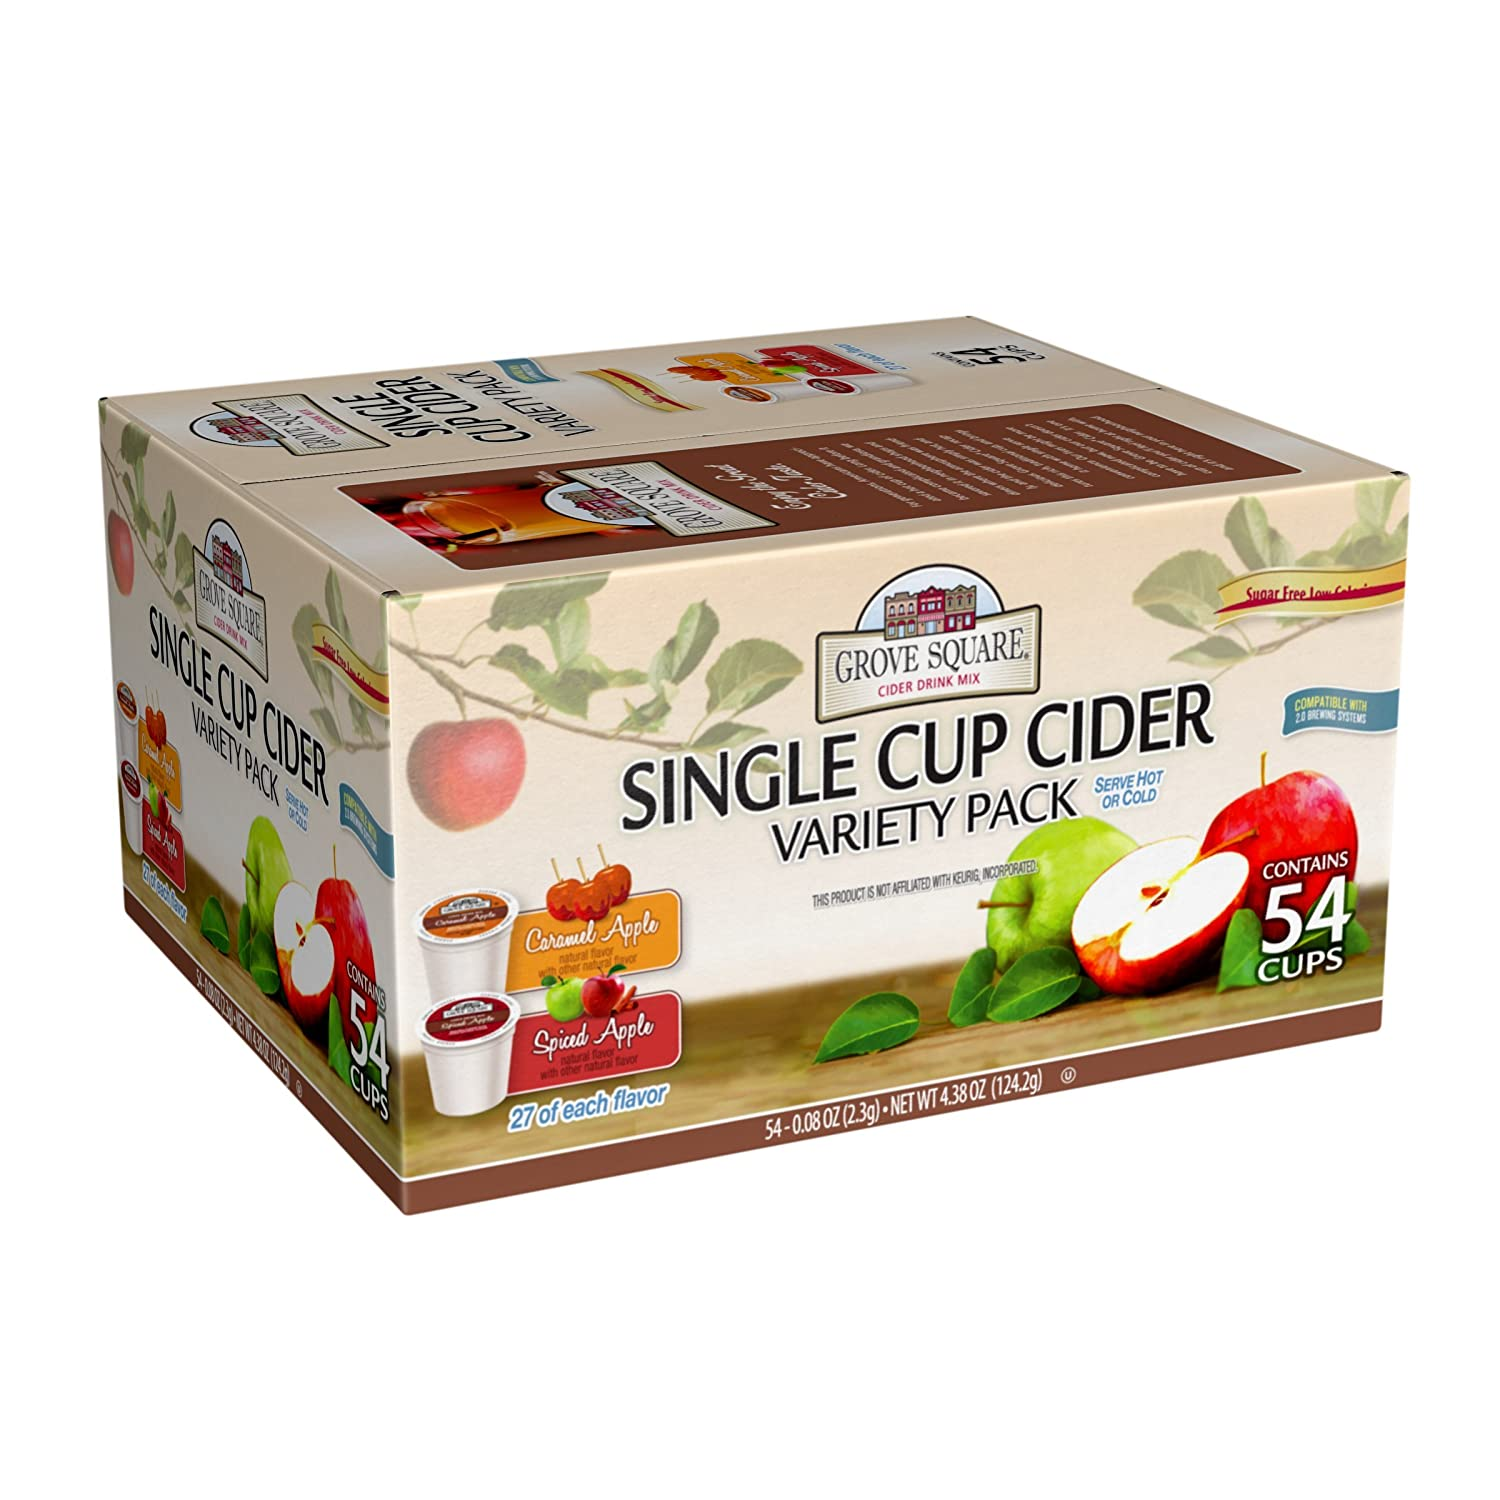 Grove Square Cider Single Serve Cups Variety Pack, 54 Count (Pack of 1)